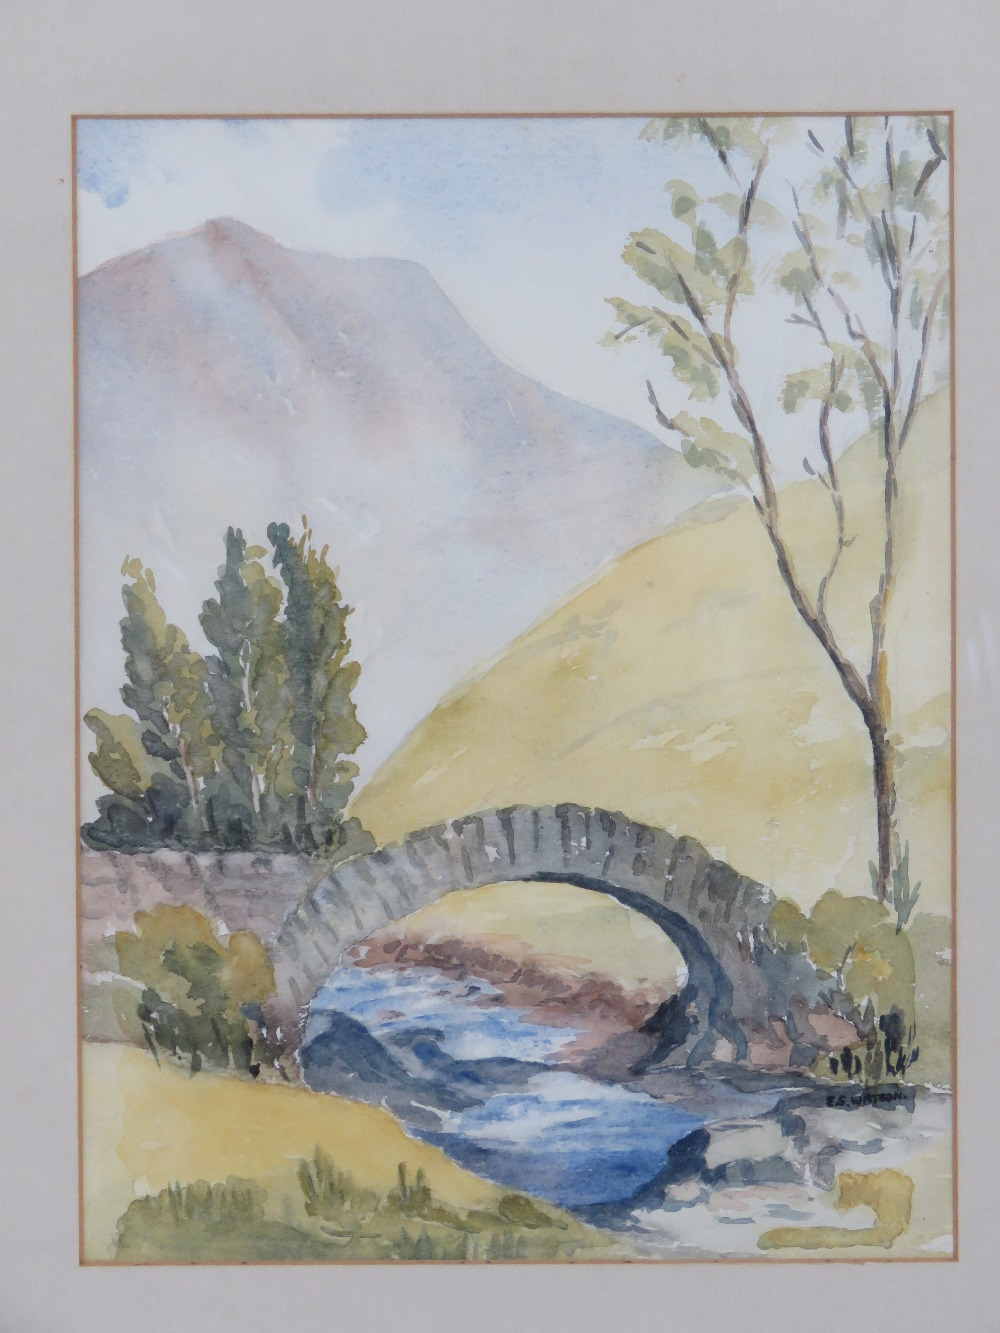 Watercolour by Eve Watson 'Pack horse br - Image 2 of 4